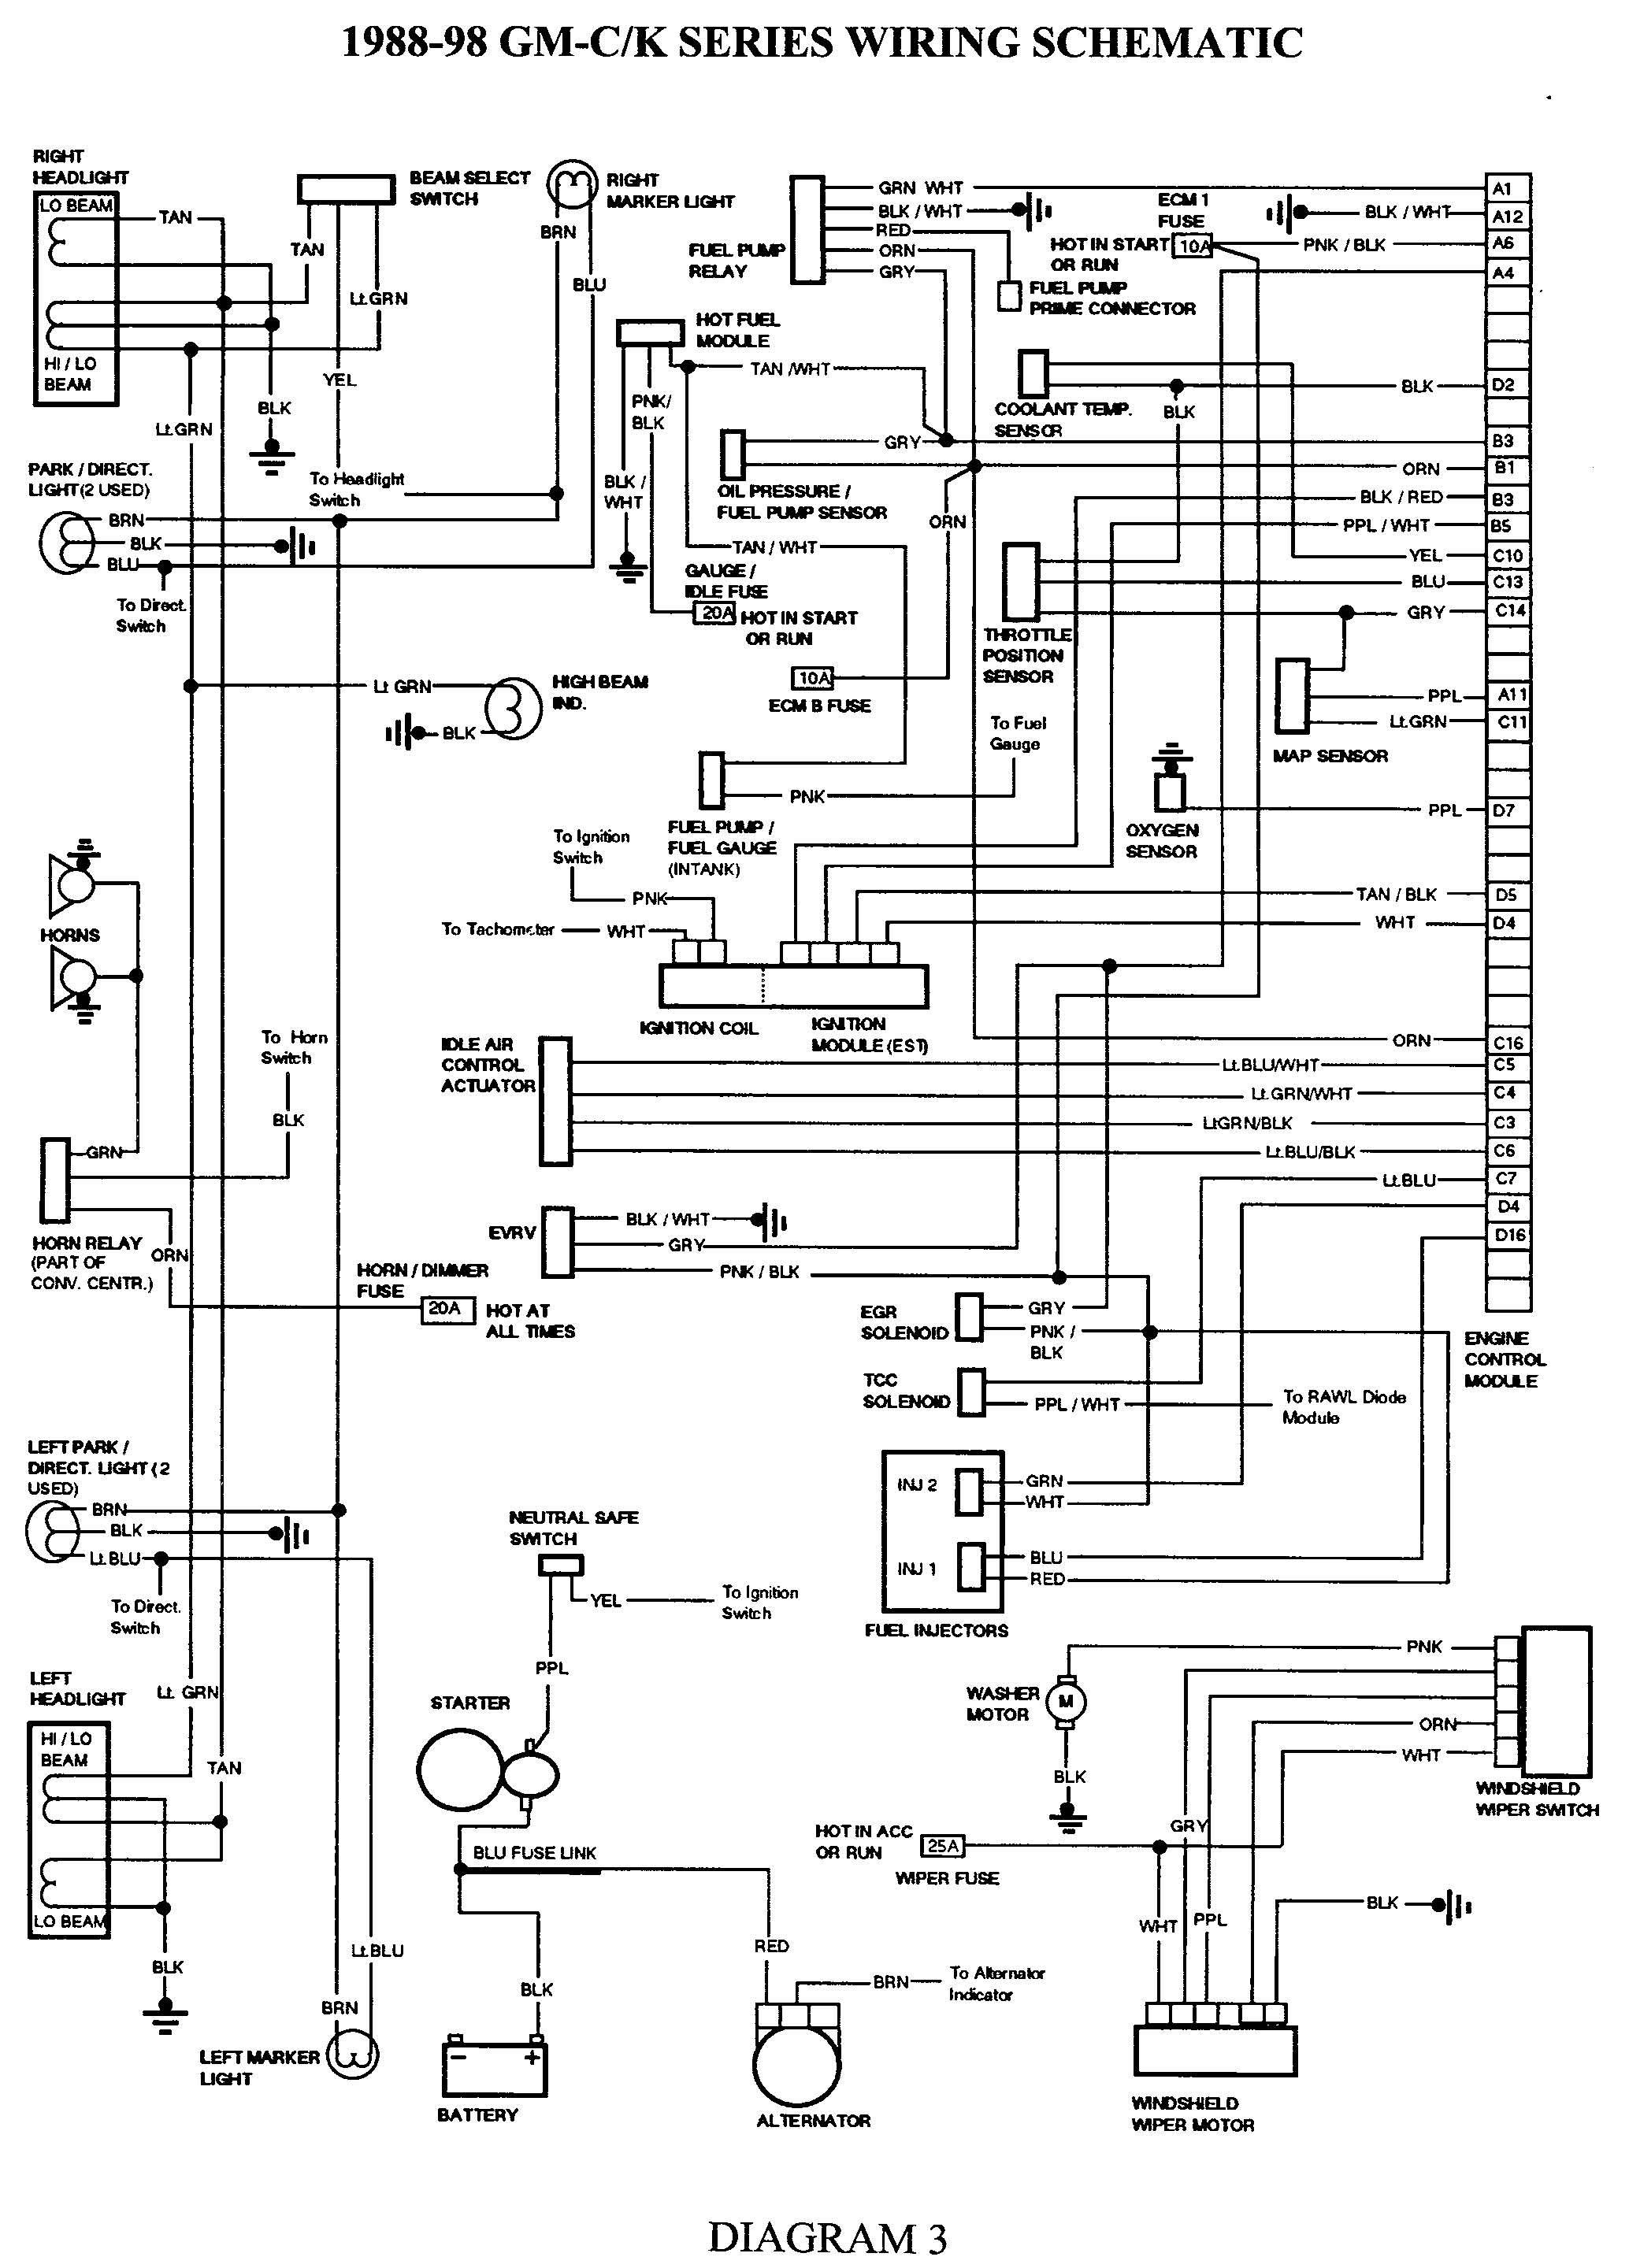 Wiring Diagram For 1996 Chevy S10